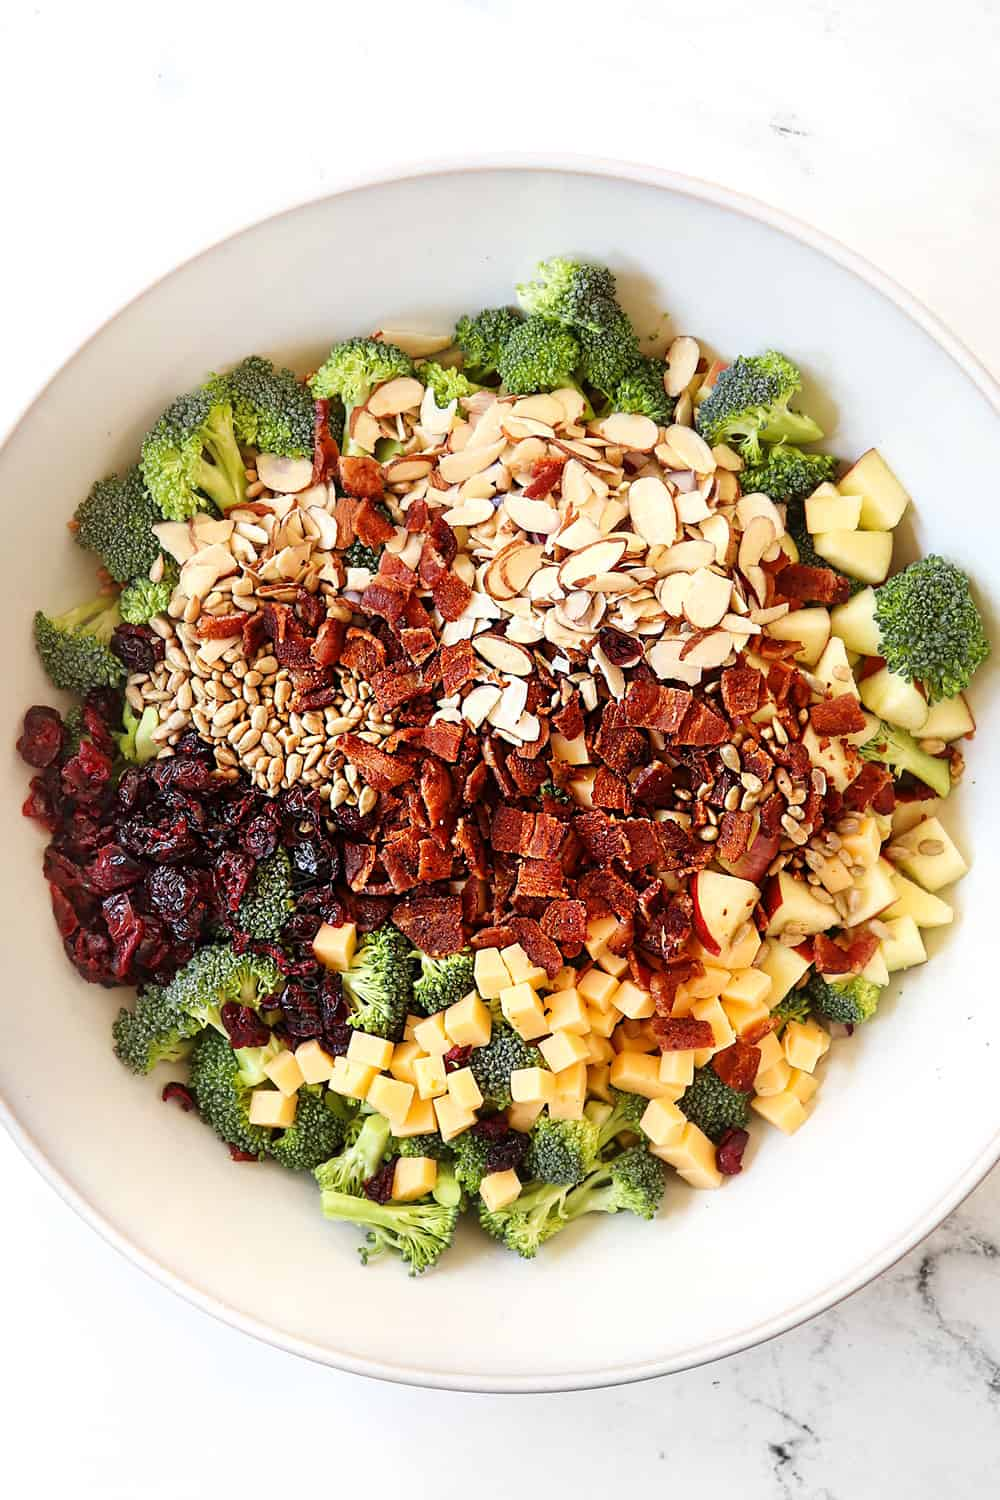 top view showing how to make easy broccoli salad by adding broccoli, bacon cheese, apples, nuts, sunflower seeds and craisins to a white bowl